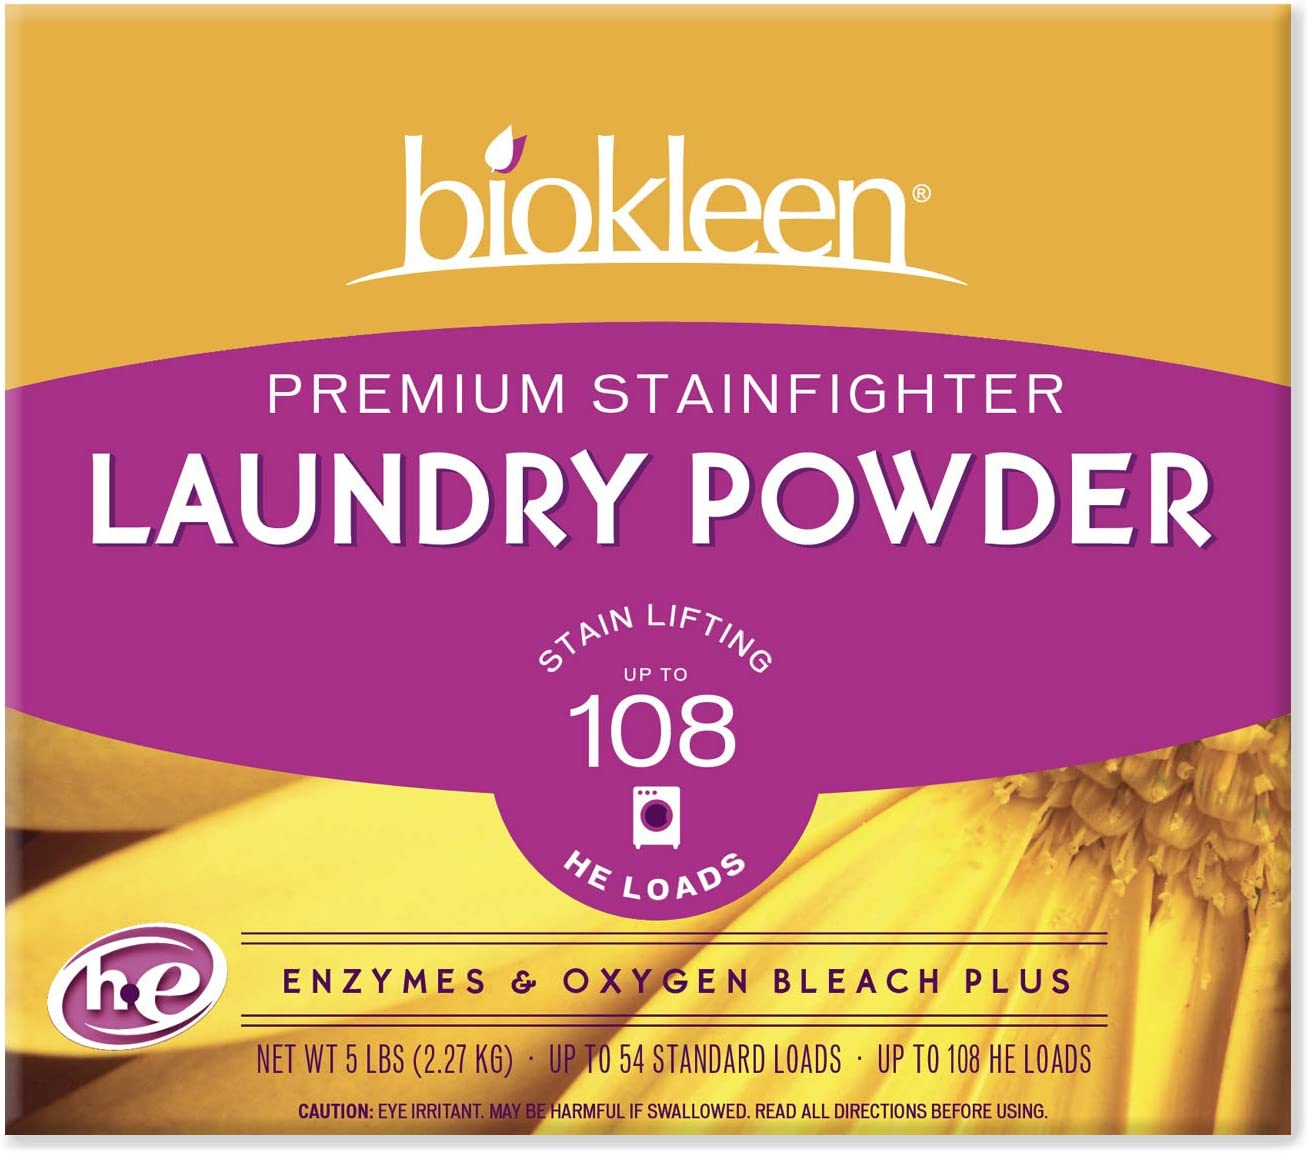 Biokleen Laundry Detergent Powder, Concentrated, Eco-Friendly, Non-Toxic, Plant-Based, No Artificial Fragrance or Preservatives, Premium Plus, 5 Pounds - 108 HE Loads/54 Standard Loads (Pack of 8)